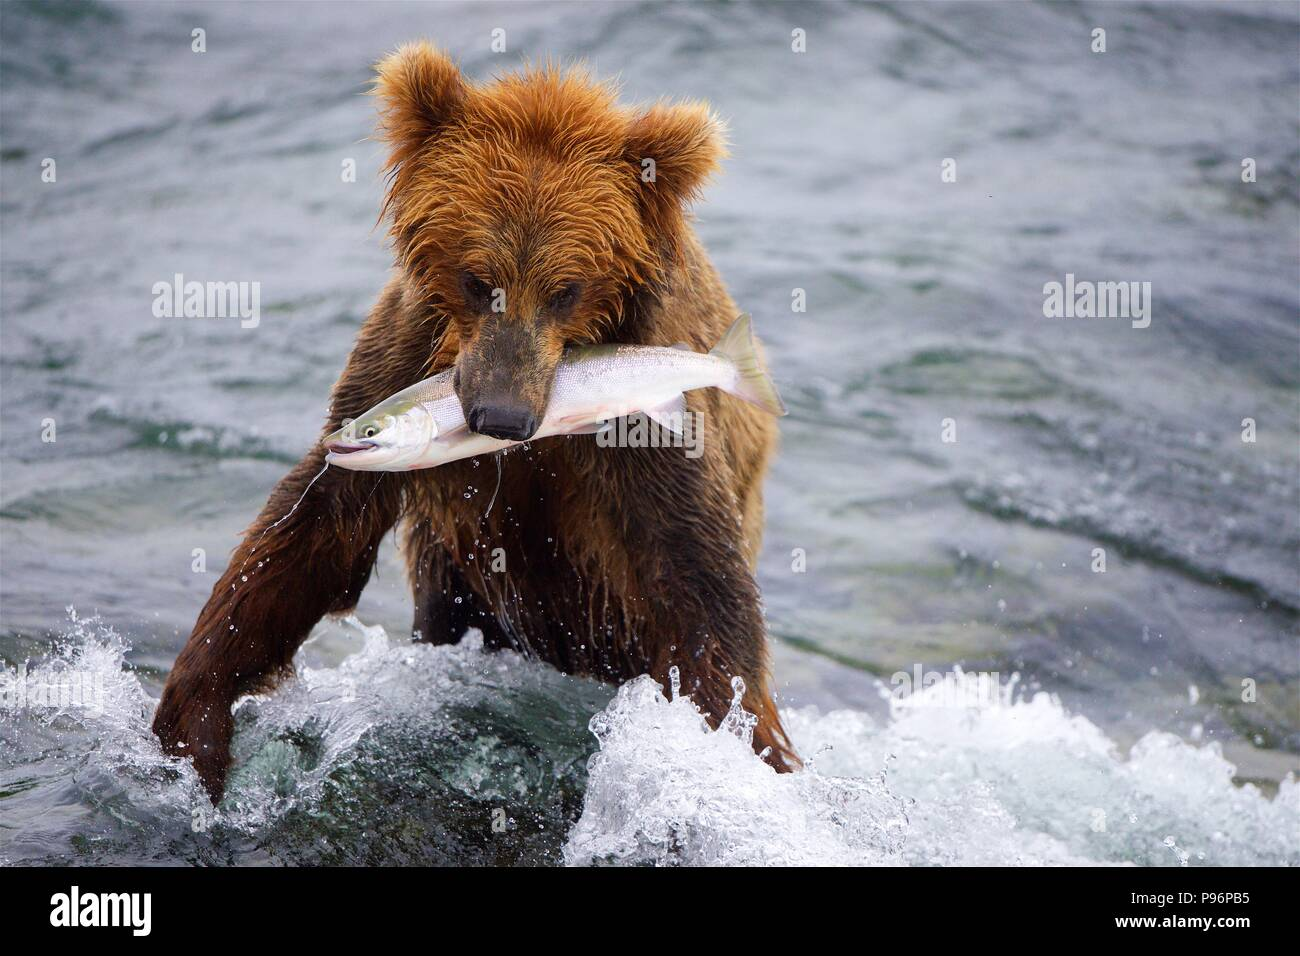 A grizzly bear catches a big salmon in Brooks Falls, Katmai, Alaska - Stock Image